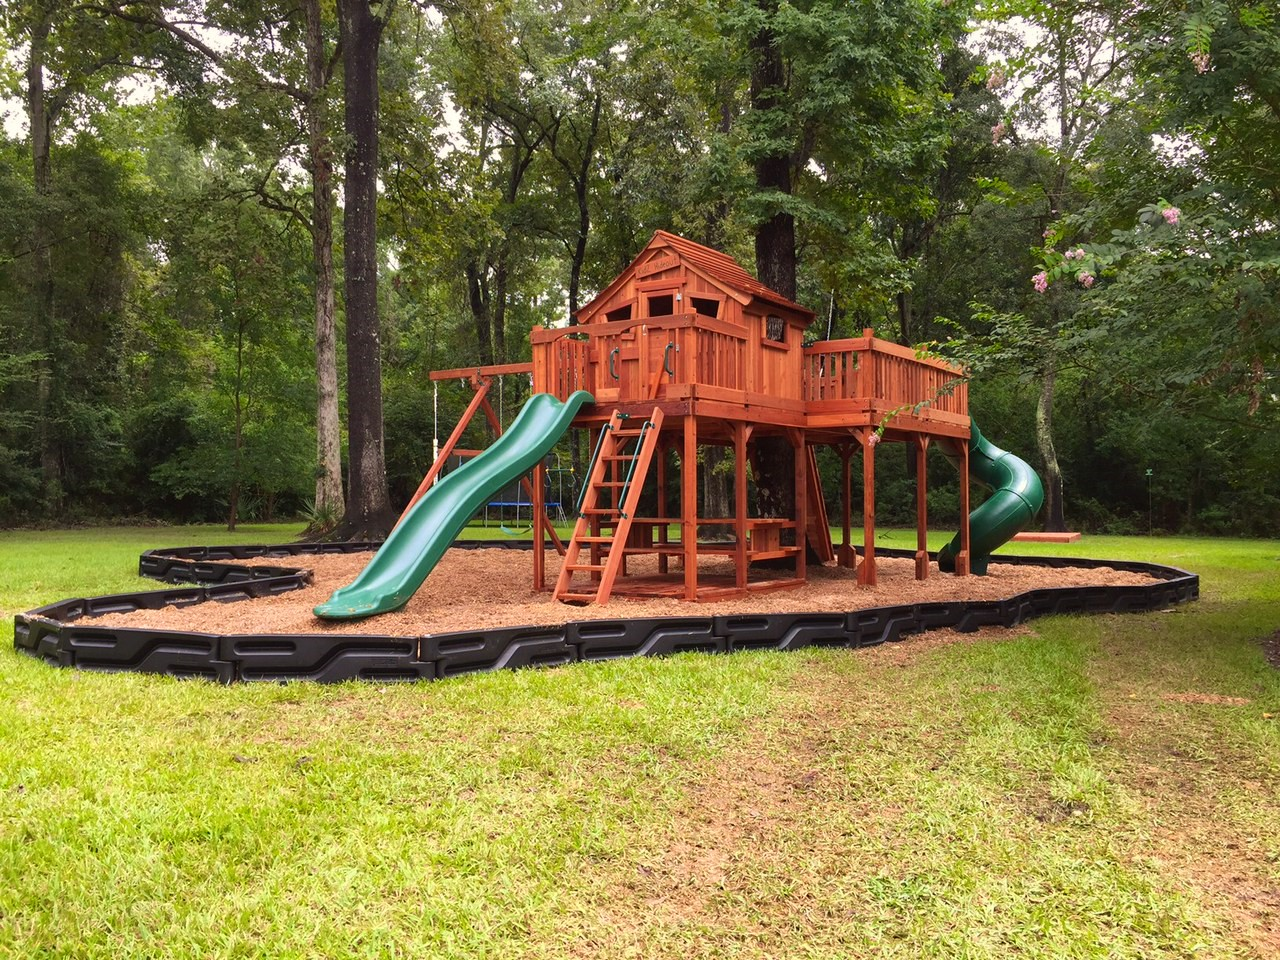 fort stockton, cabin, tree platform, tree house, picnic table, twister slide, wooden swing set, swing set, swings, slide, swing set for kids, kids, children, play, playground, playset, sets, accessories, backyard swing set